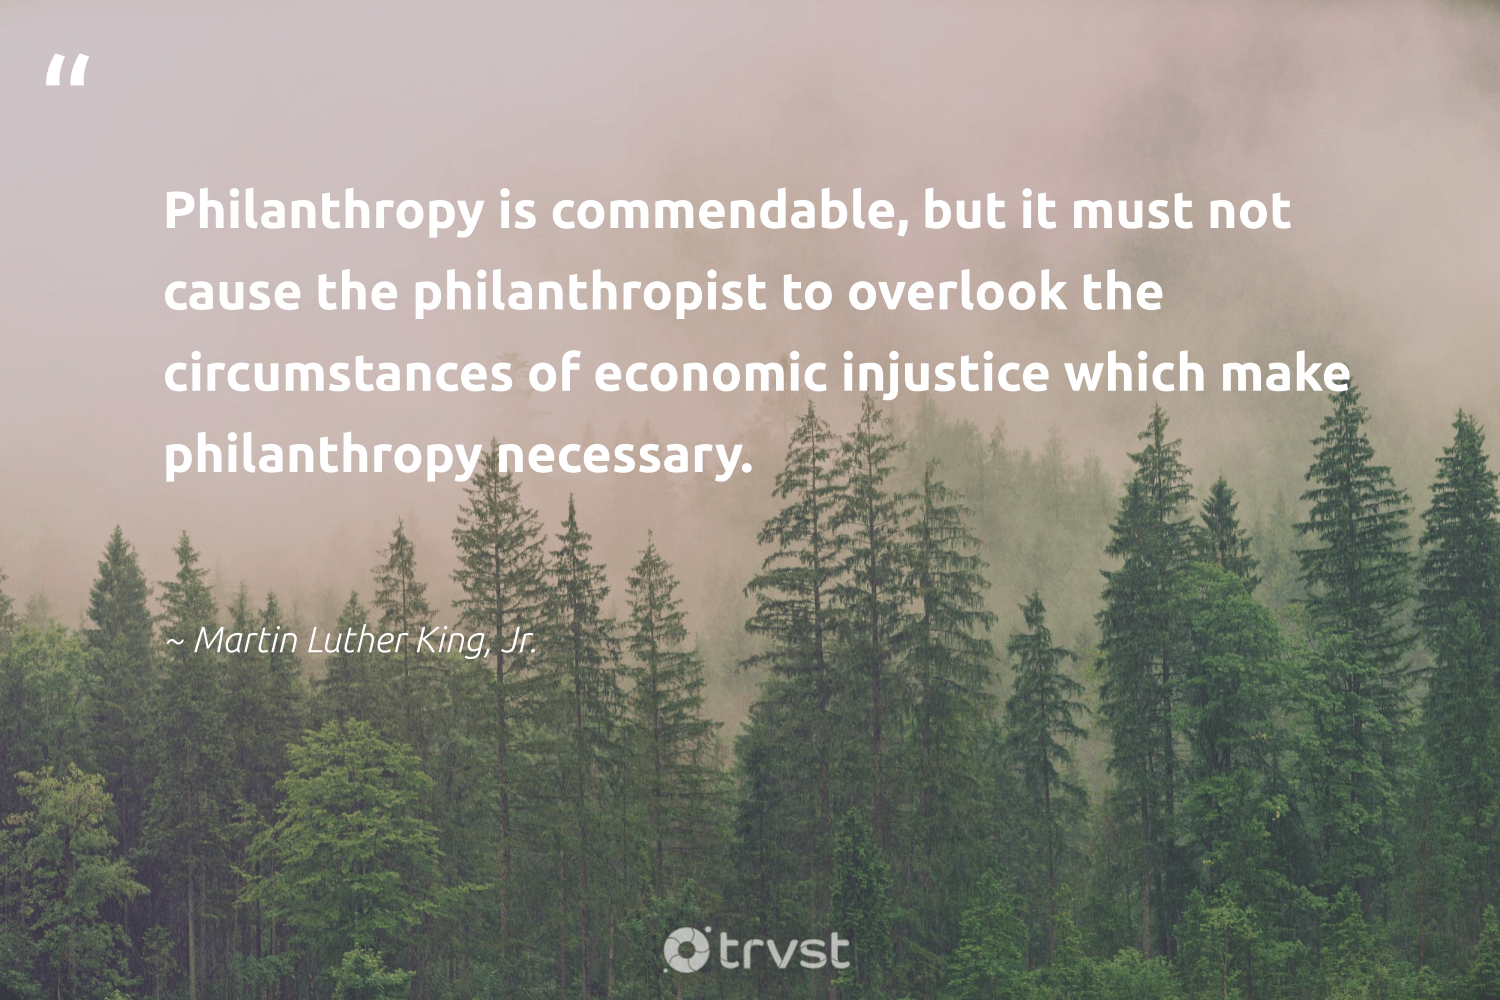 """Philanthropy is commendable, but it must not cause the philanthropist to overlook the circumstances of economic injustice which make philanthropy necessary.""  - Martin Luther King, Jr. #trvst #quotes #cause #philanthropy #fundraising #itscooltobekind #equalopportunity #changetheworld #nonprofit #togetherwecan #society #dogood"